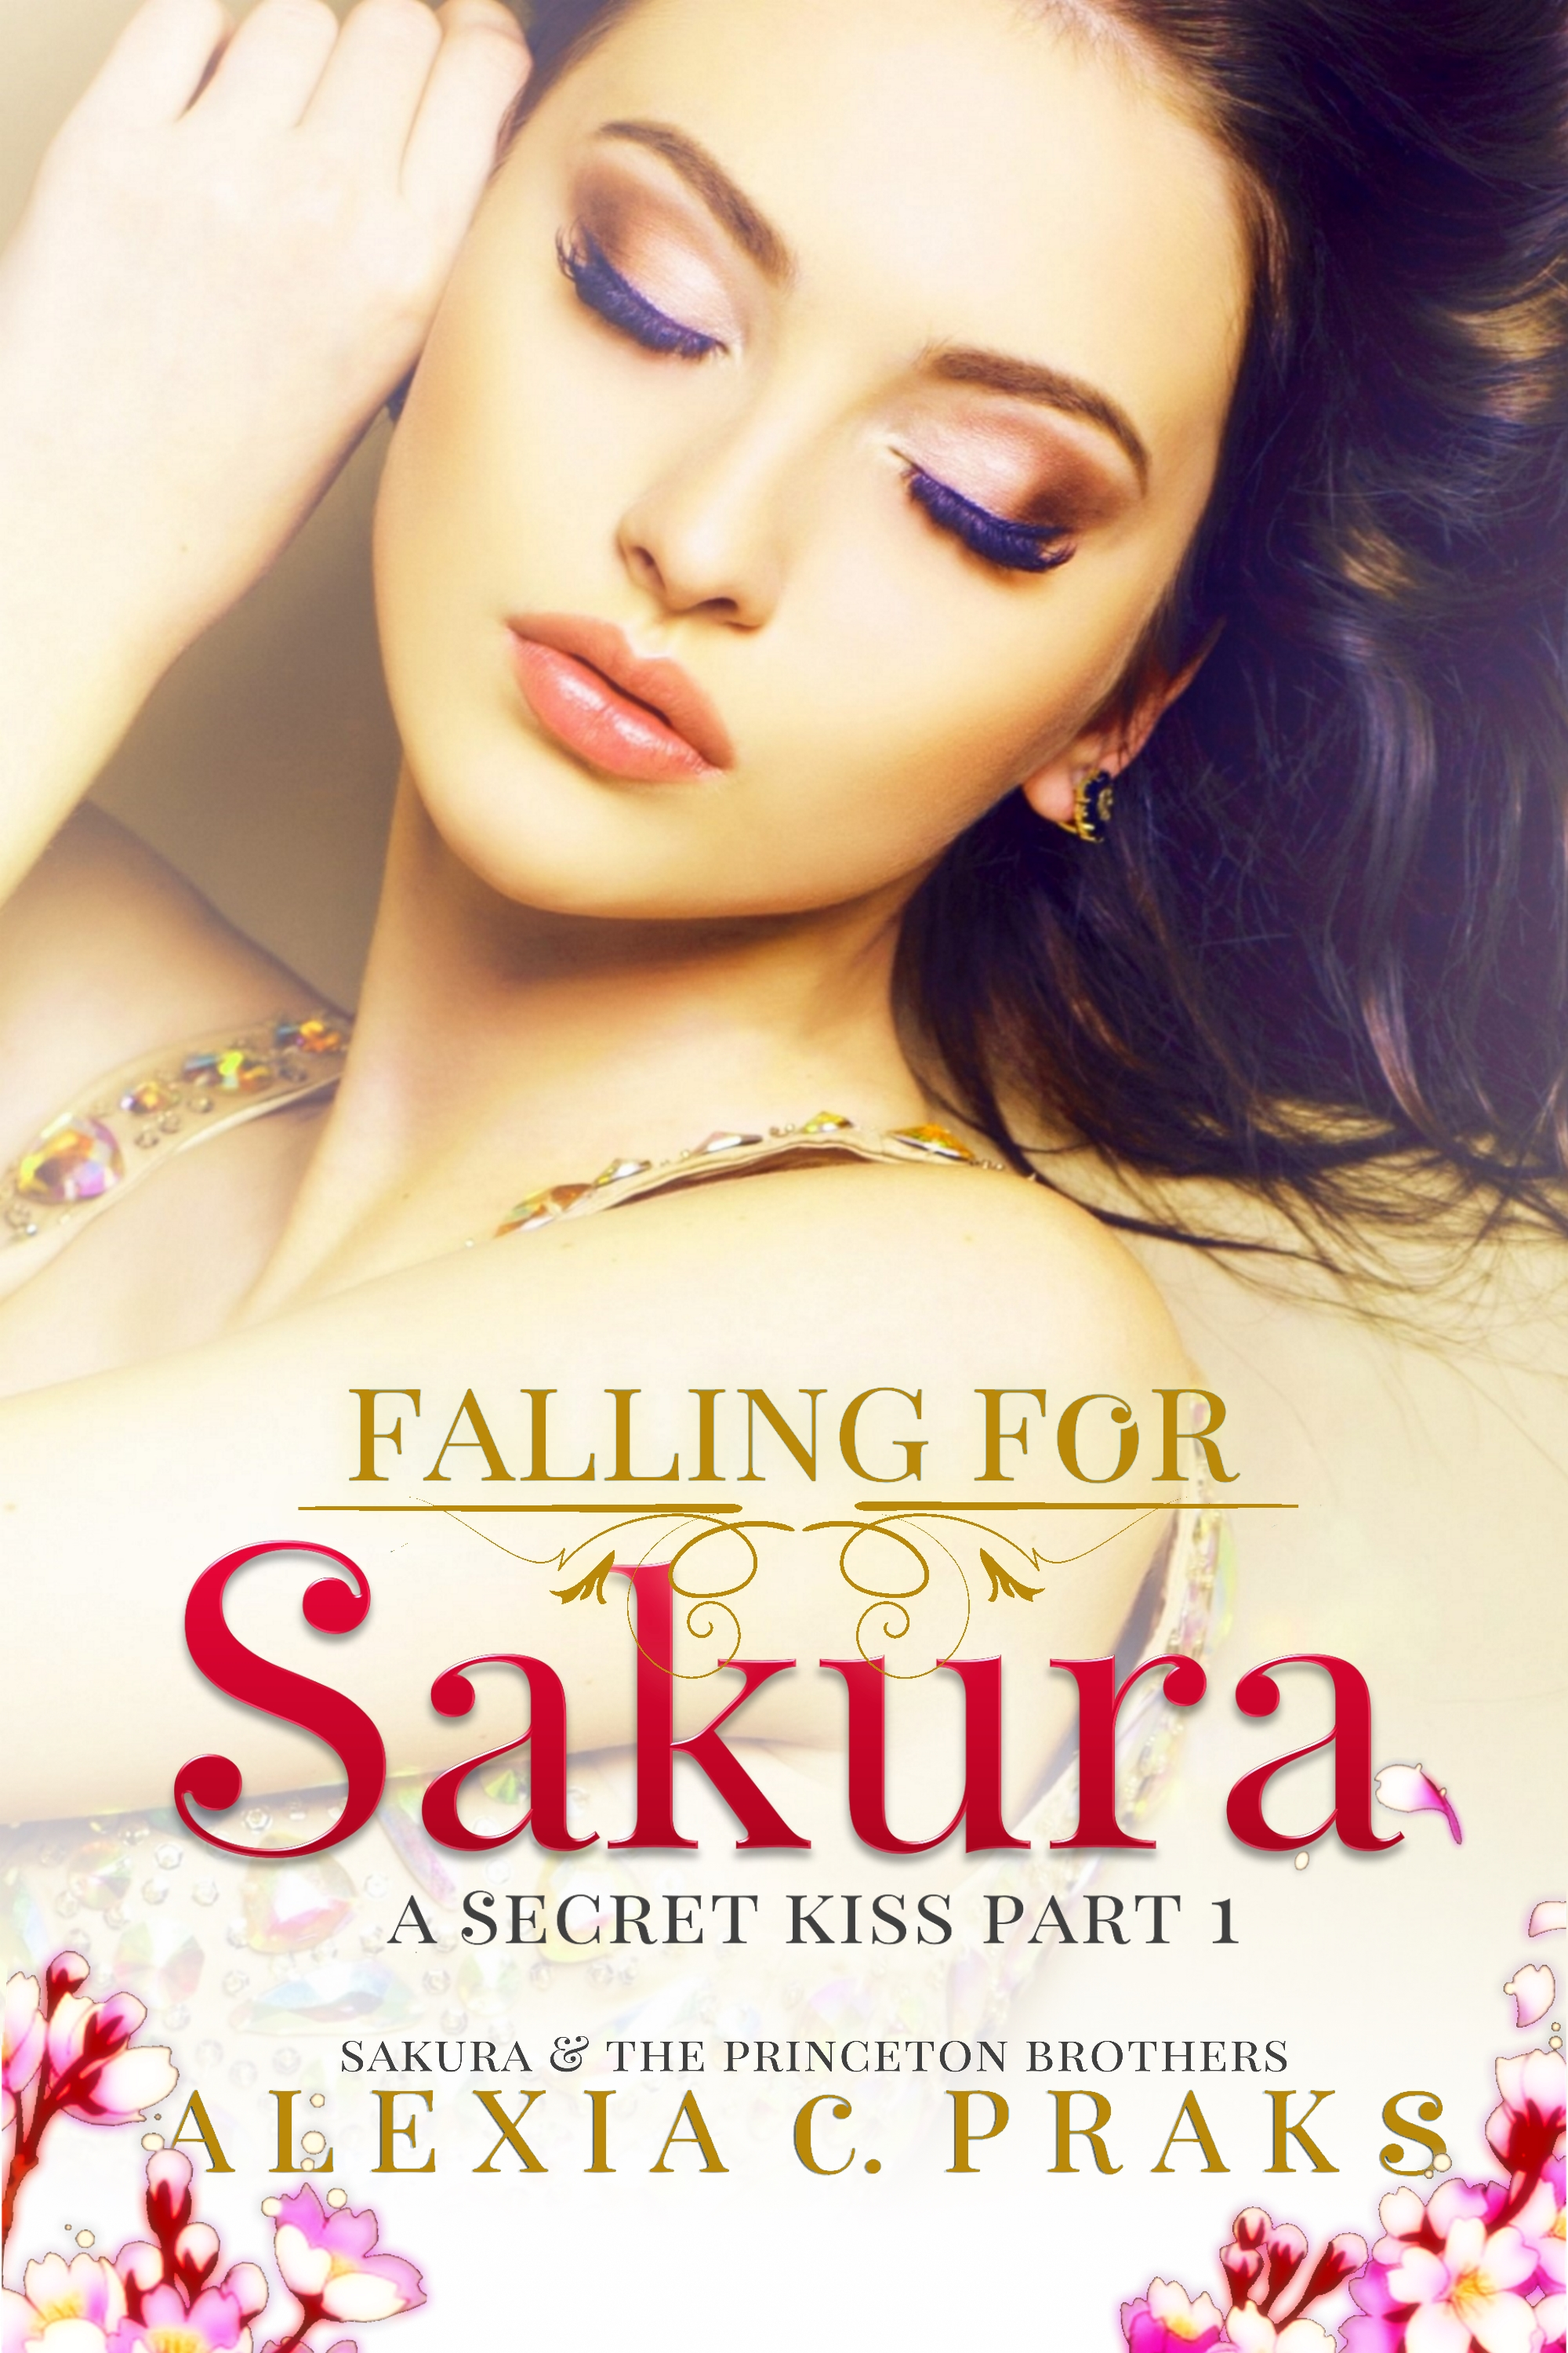 Falling for Sakura: A Secret Kiss Part 1 by Alexia Praks